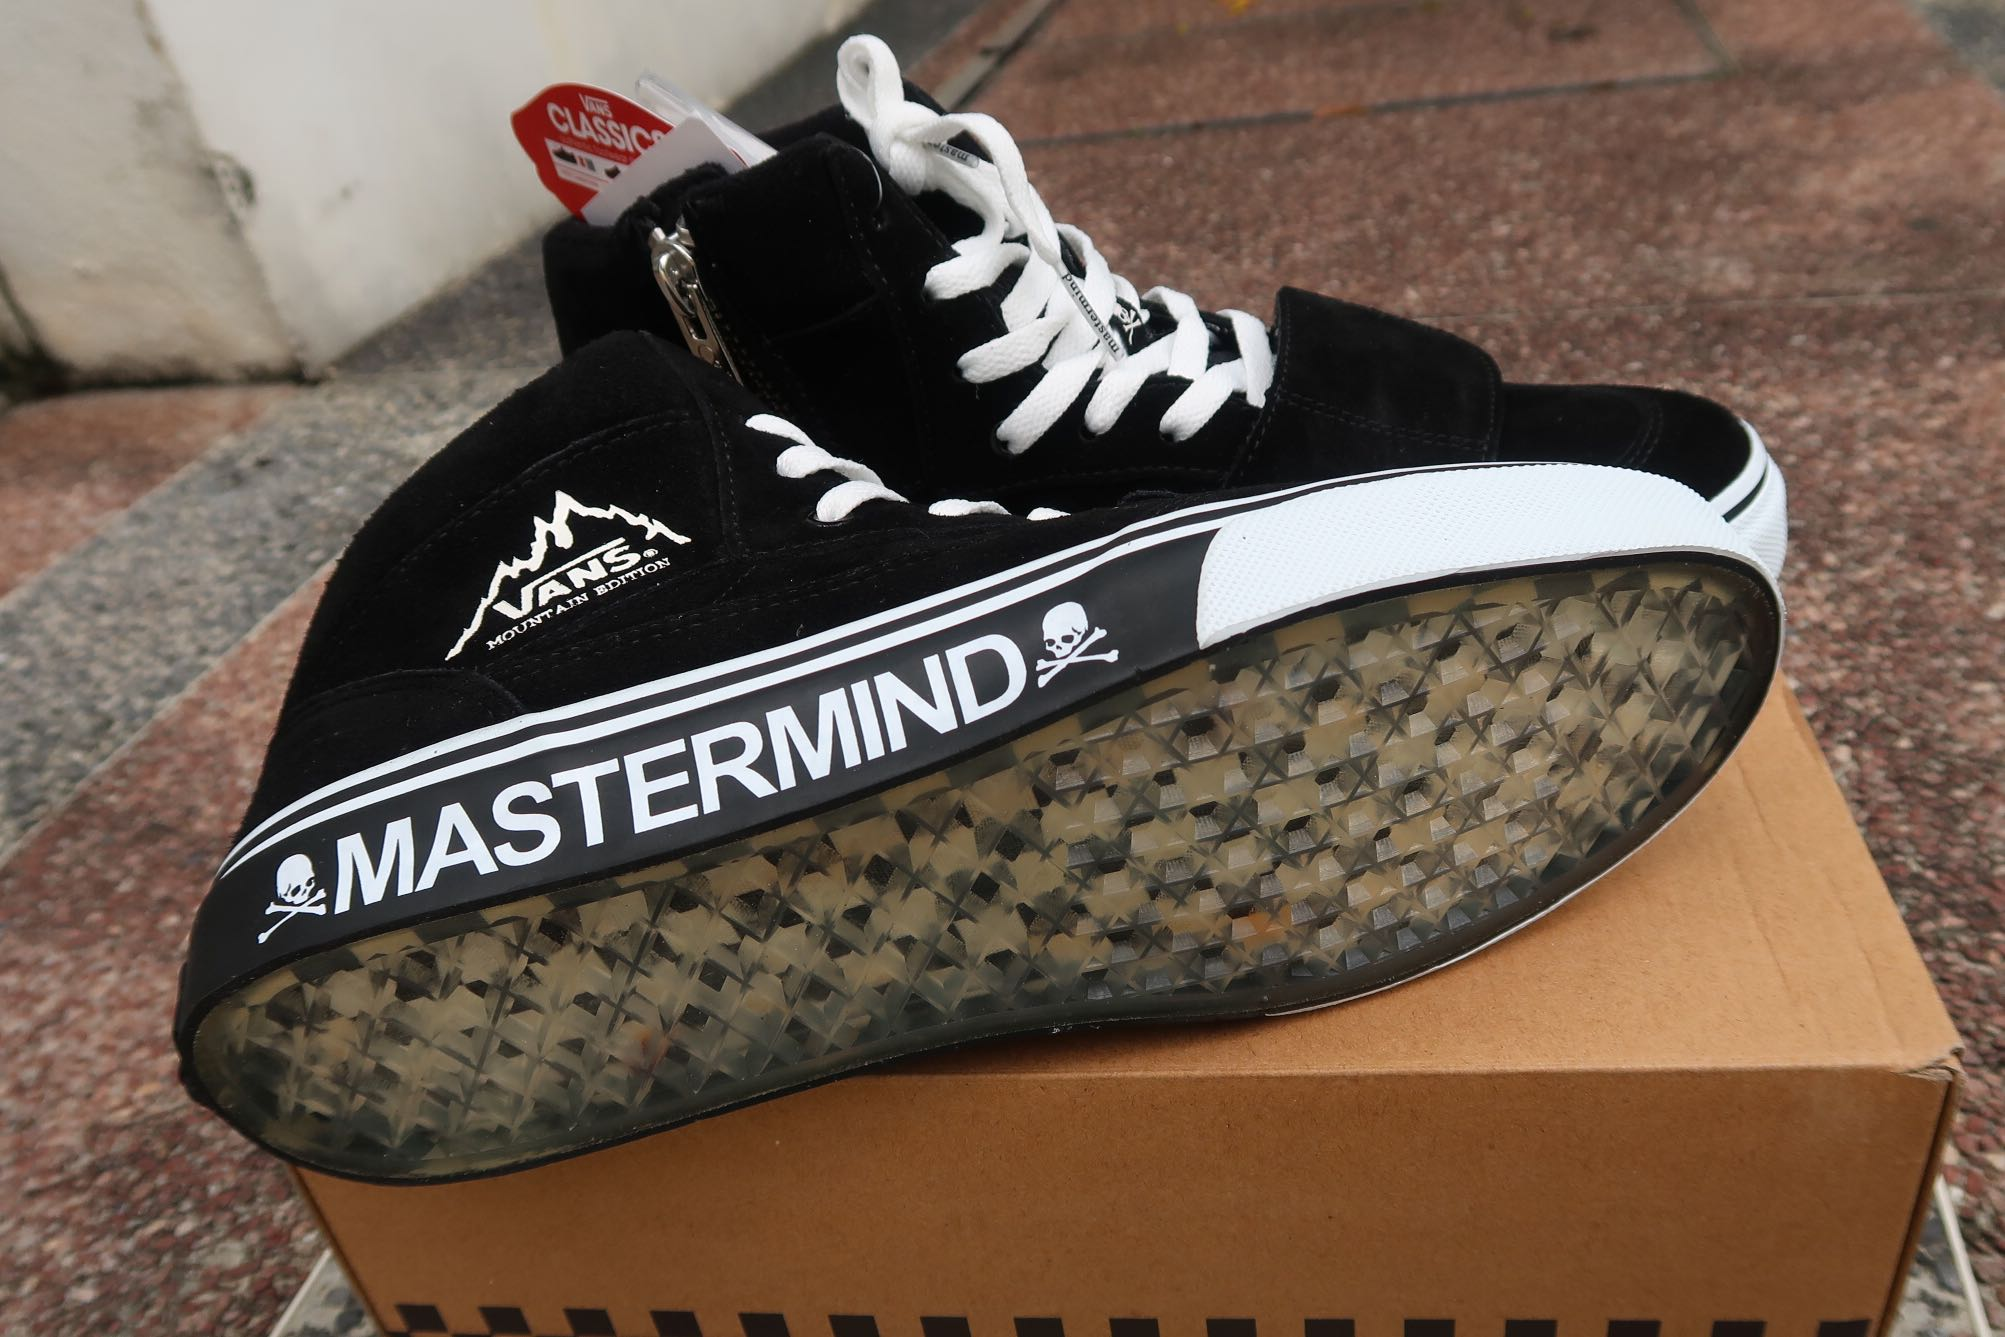 bc438a905 Limited Edition  Mastermind x Vans Mountain Edition